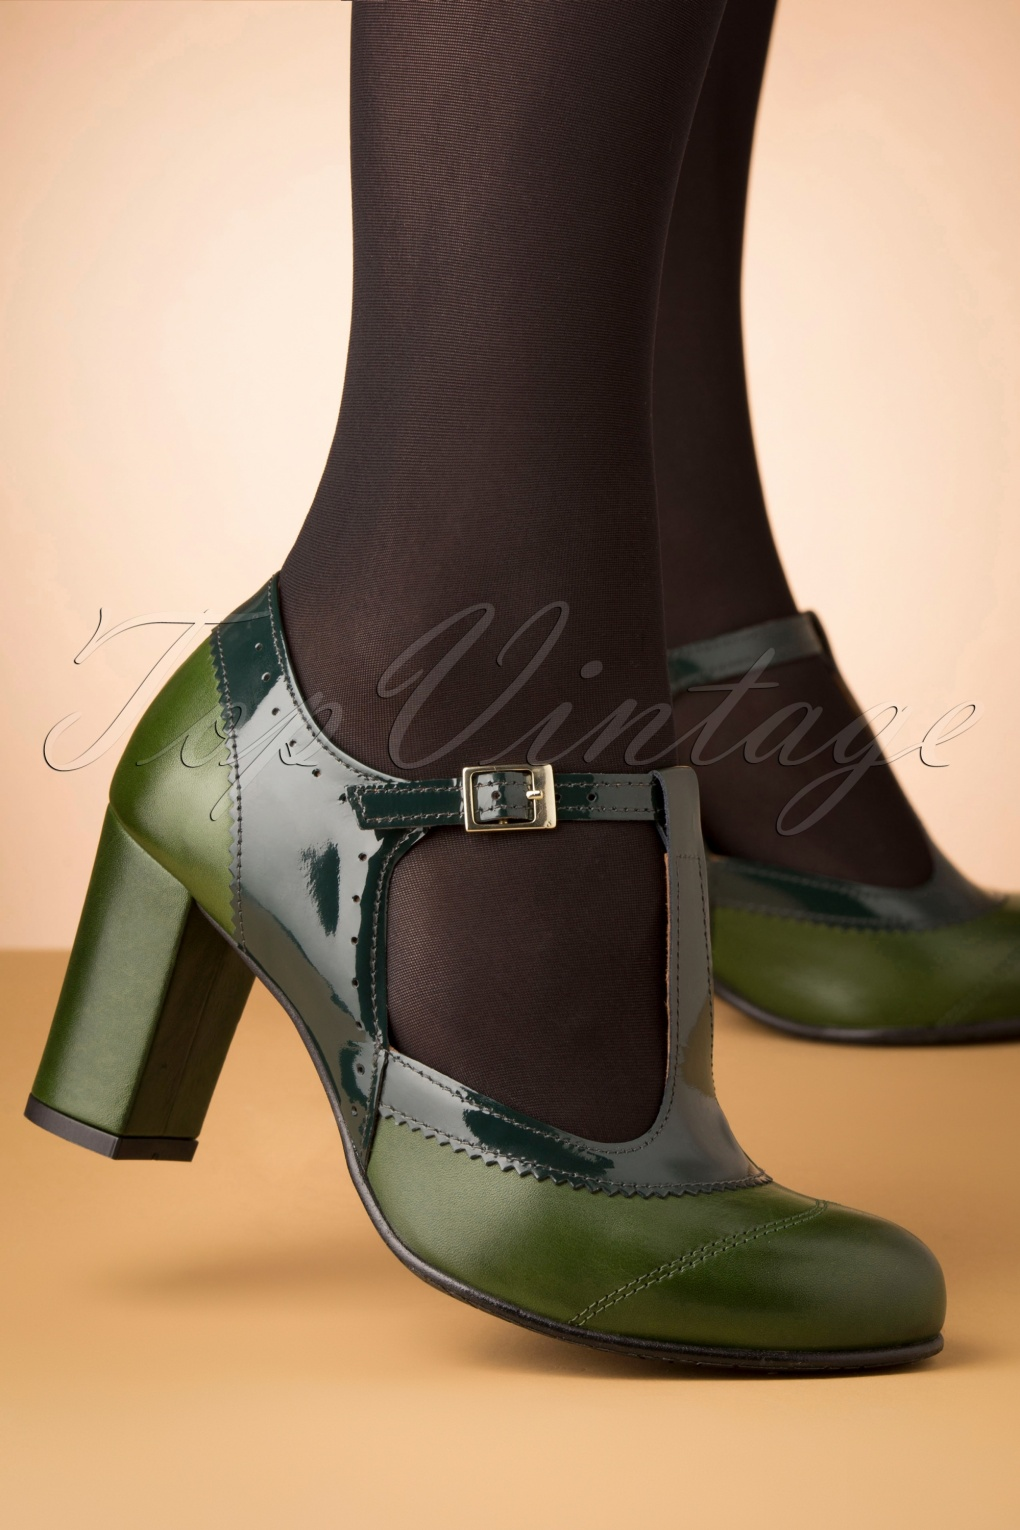 60s Shoes, Boots | 70s Shoes, Platforms, Boots 60s Ada Leather T-Strap Pumps in Green £127.78 AT vintagedancer.com